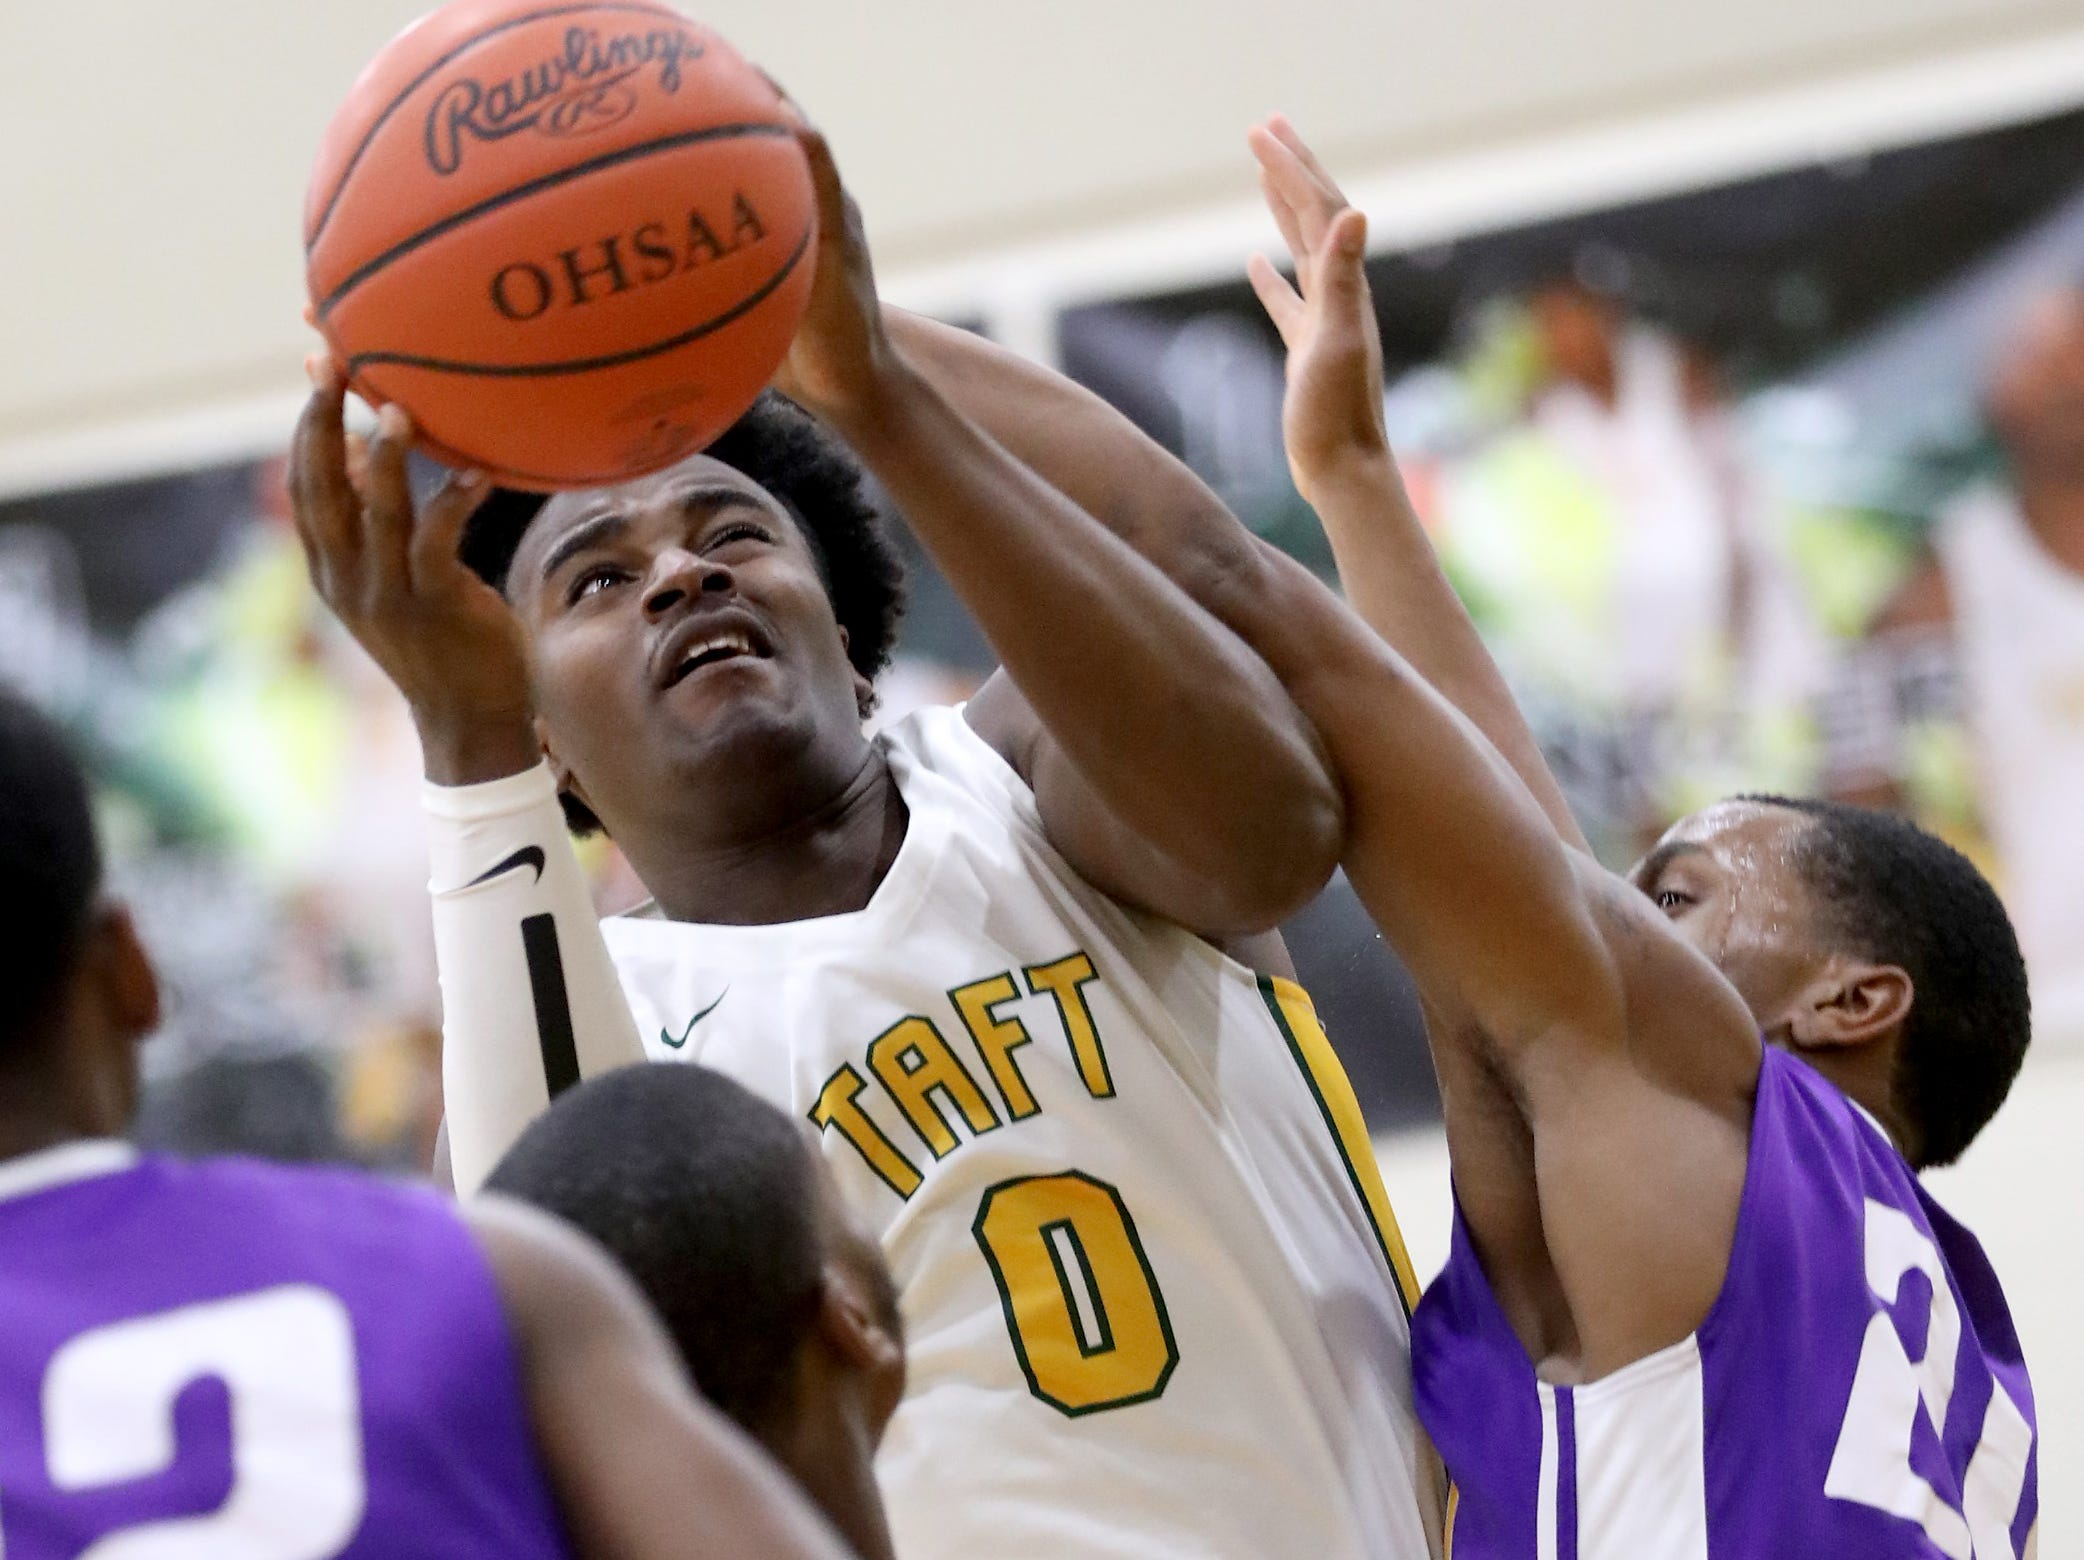 Taft forward  Cleveland Farmer grabs a rebound.